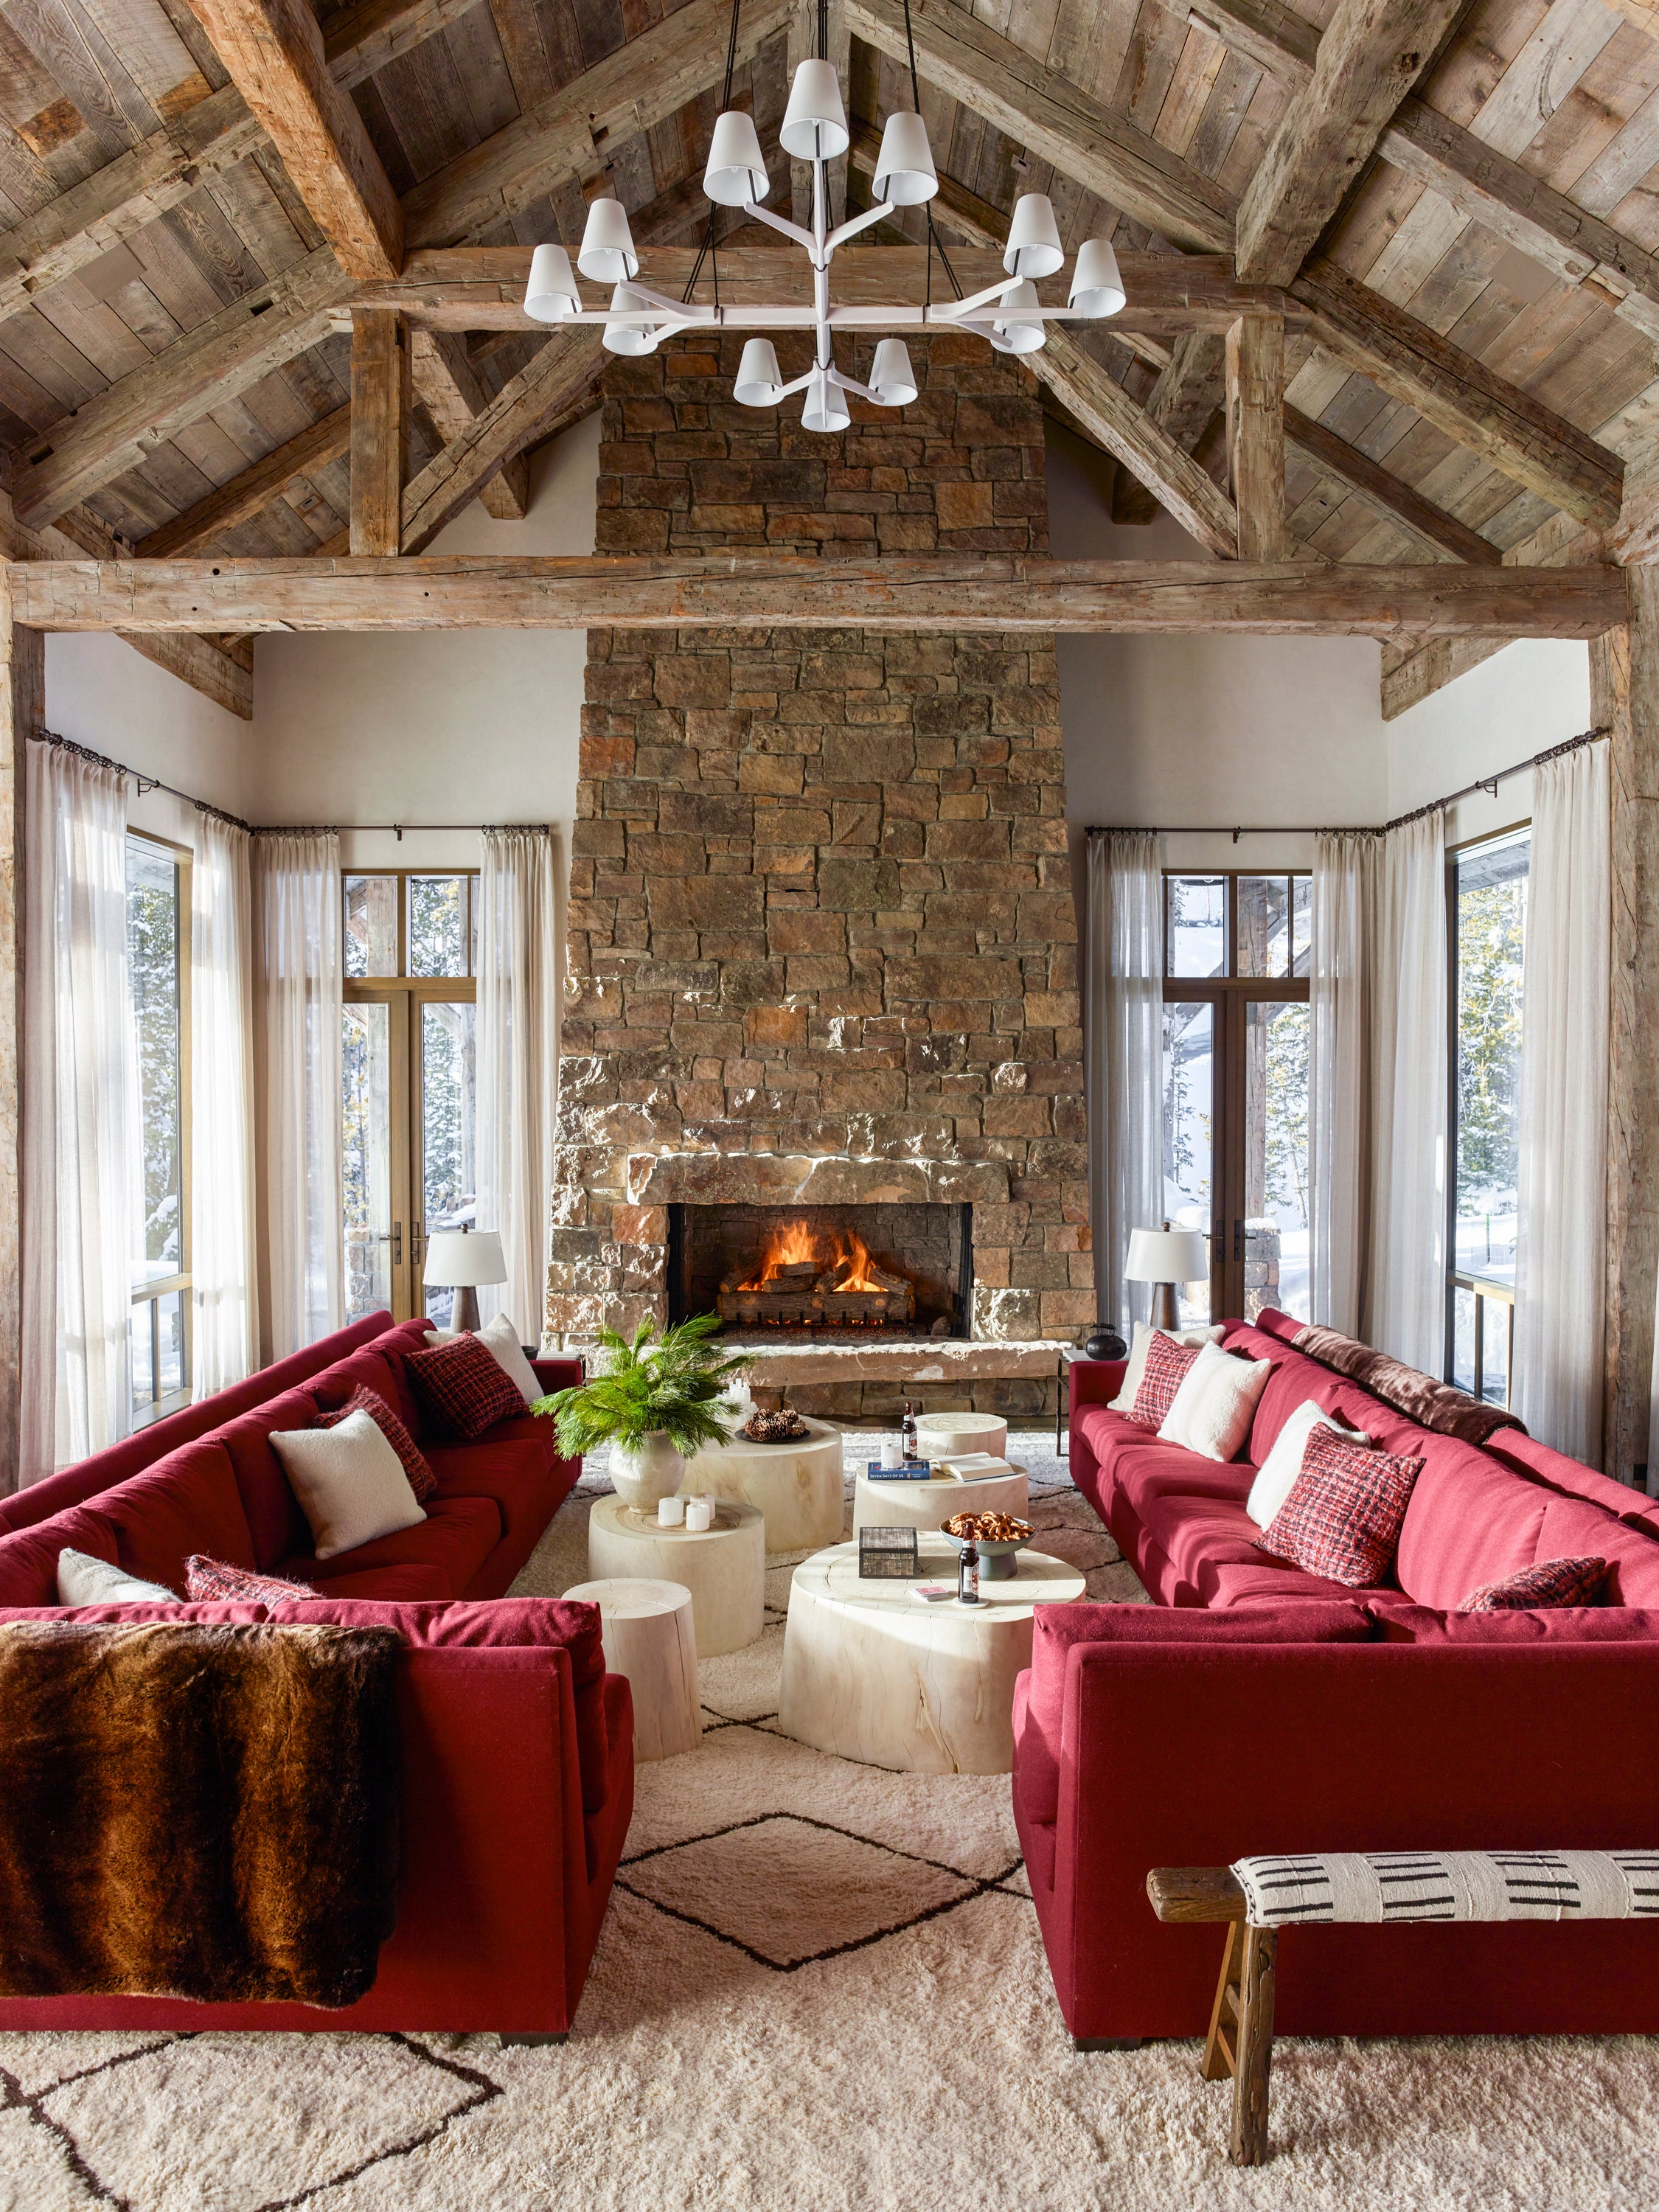 Ski Chalet Interior Design ski chalet by kylee shintaffer design on 1stdibs